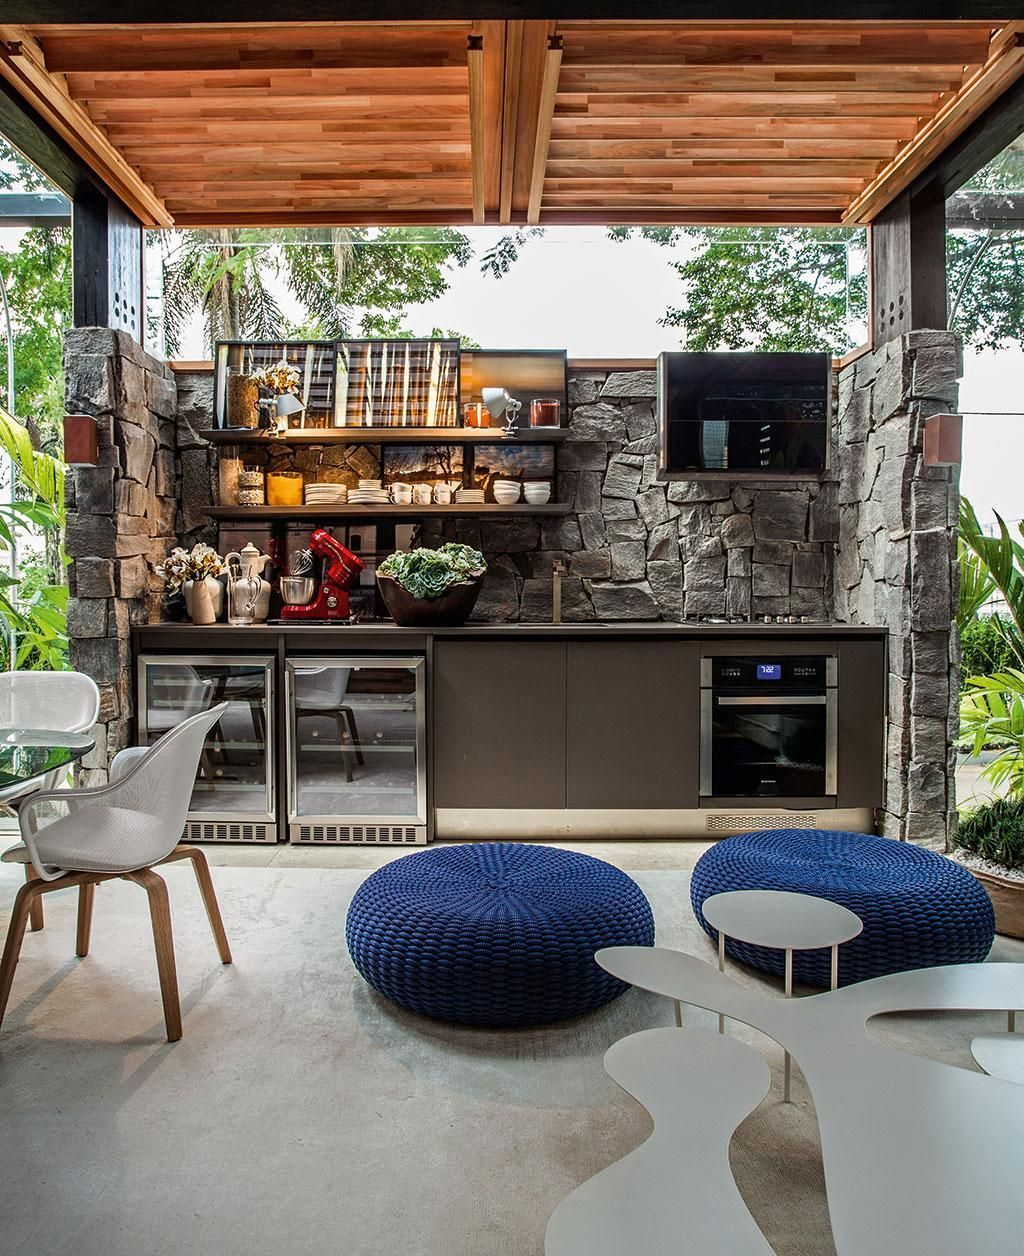 outdoor kitchen ideas get our ideal concepts for outdoor kitchens consisting of enchantin on outdoor kitchen id=16346